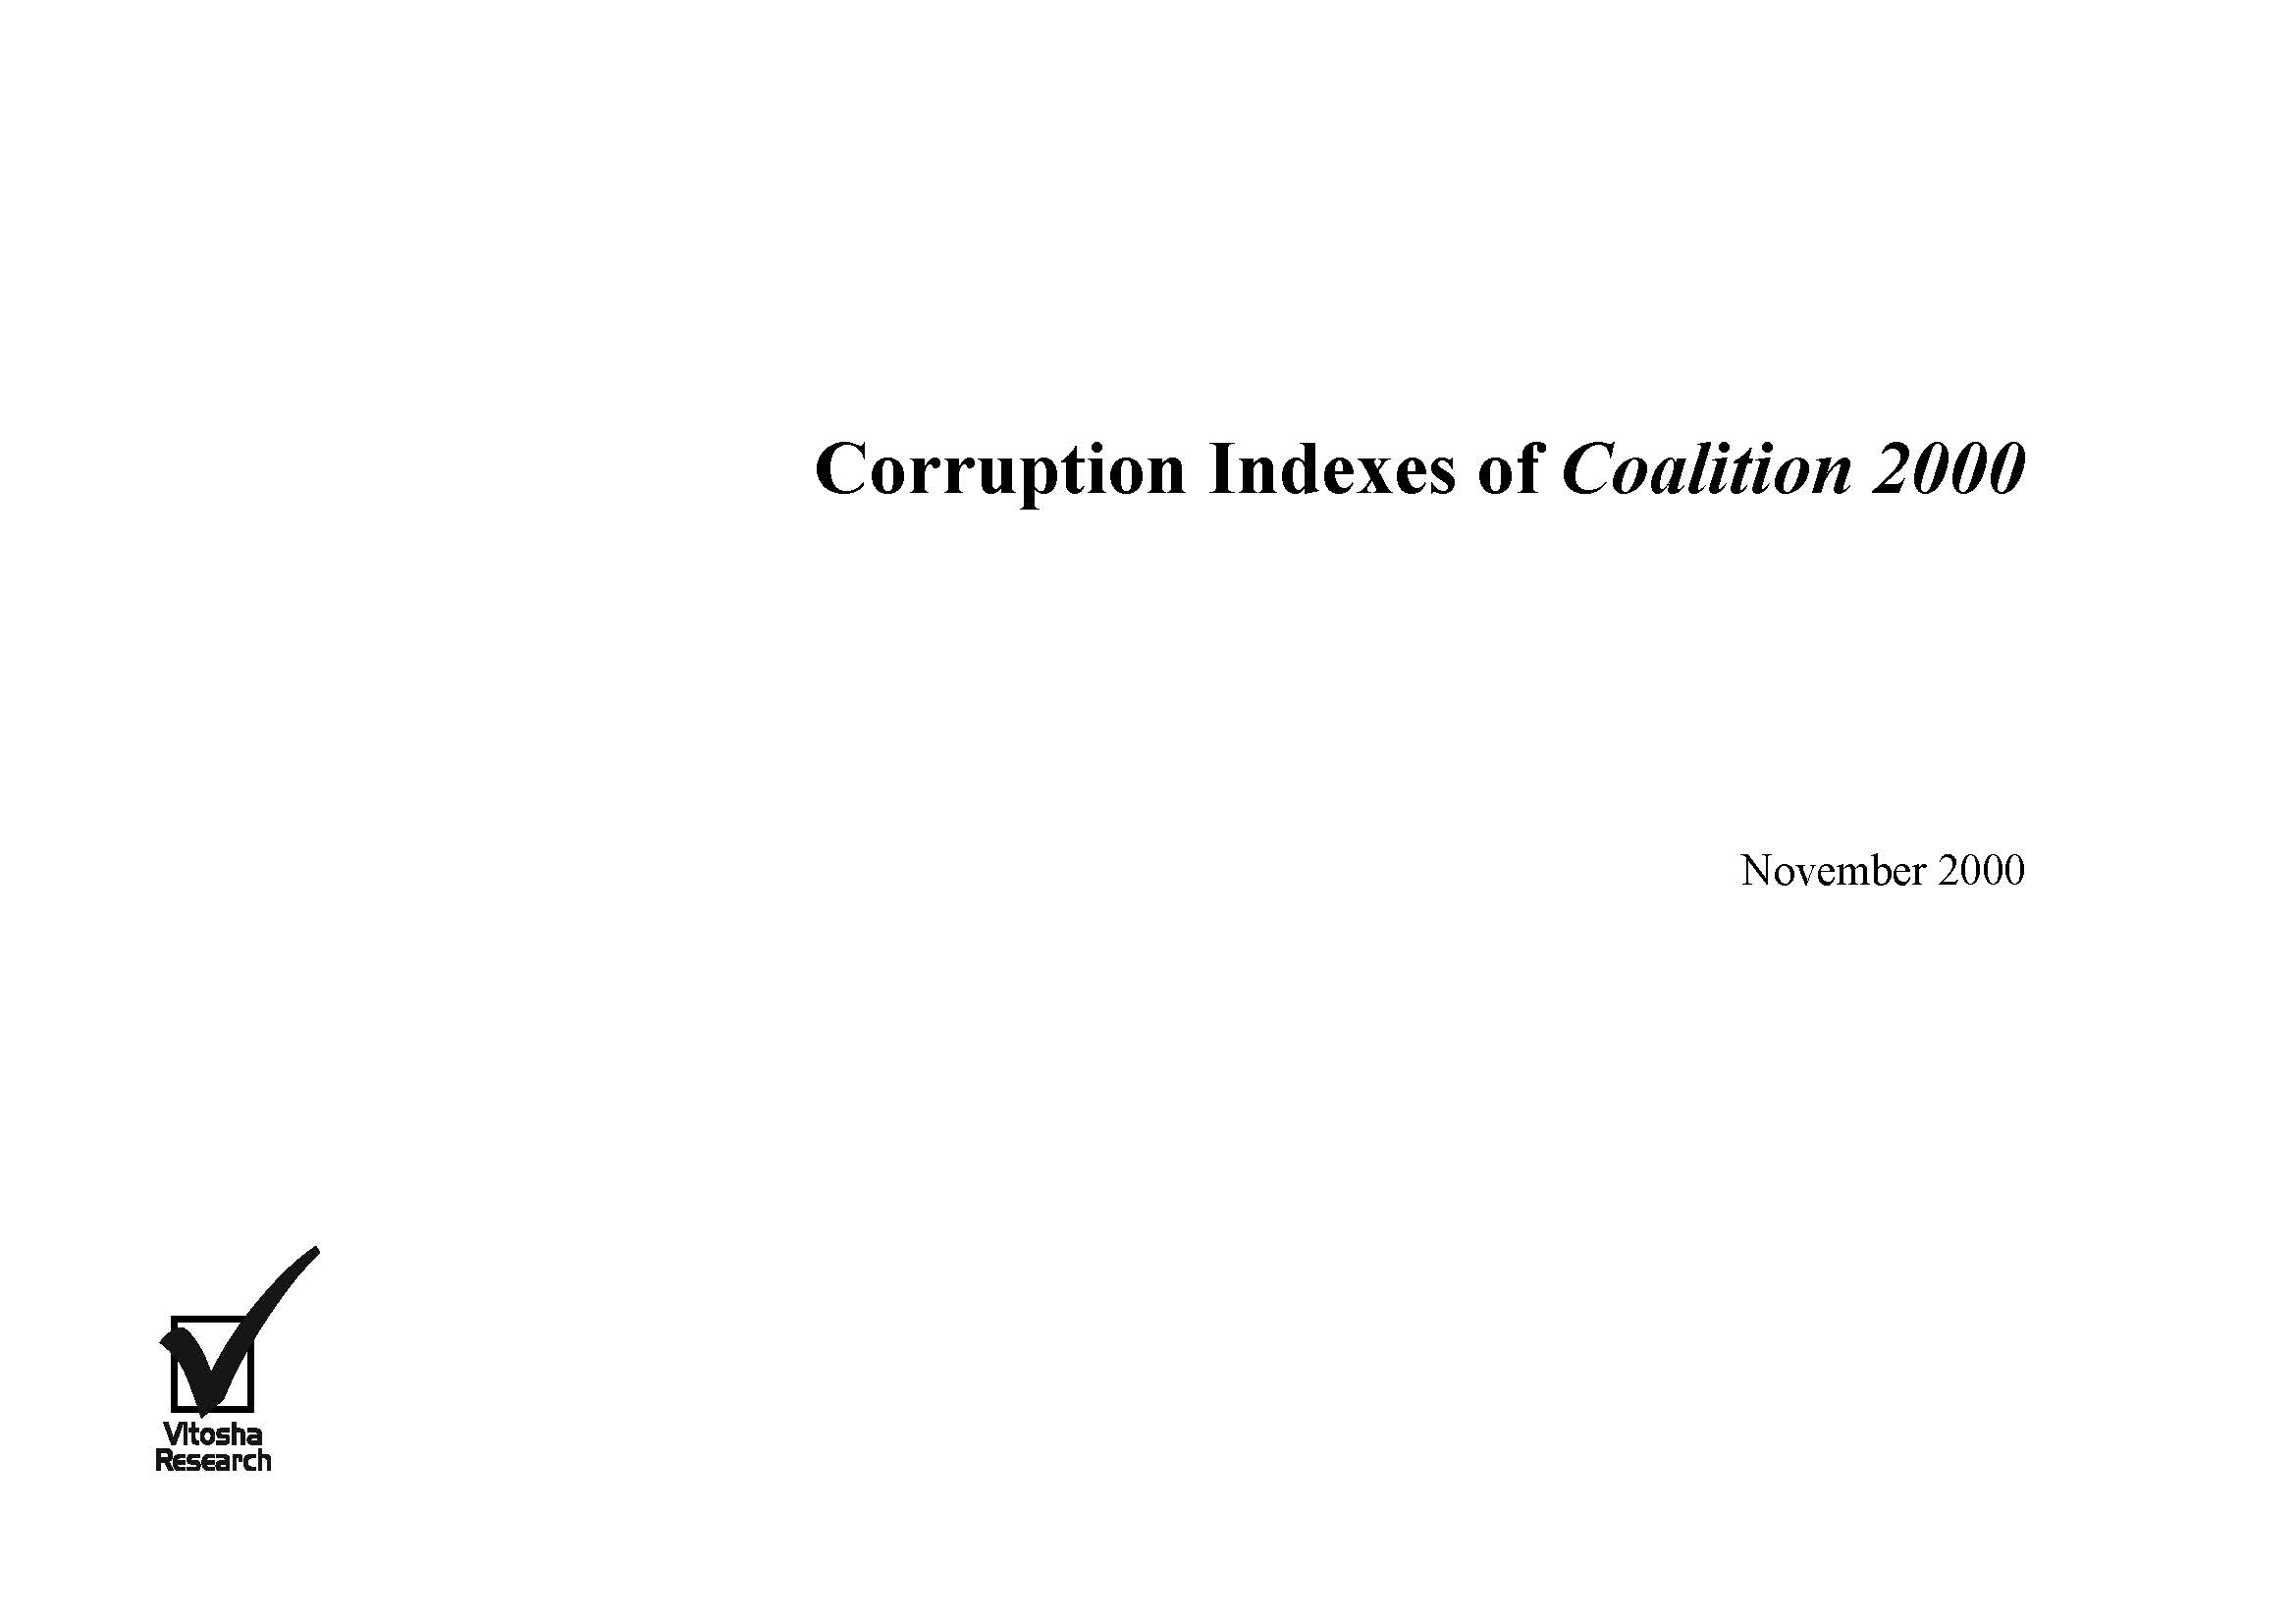 Corruption Indexes of Coalition 2000, November 2000